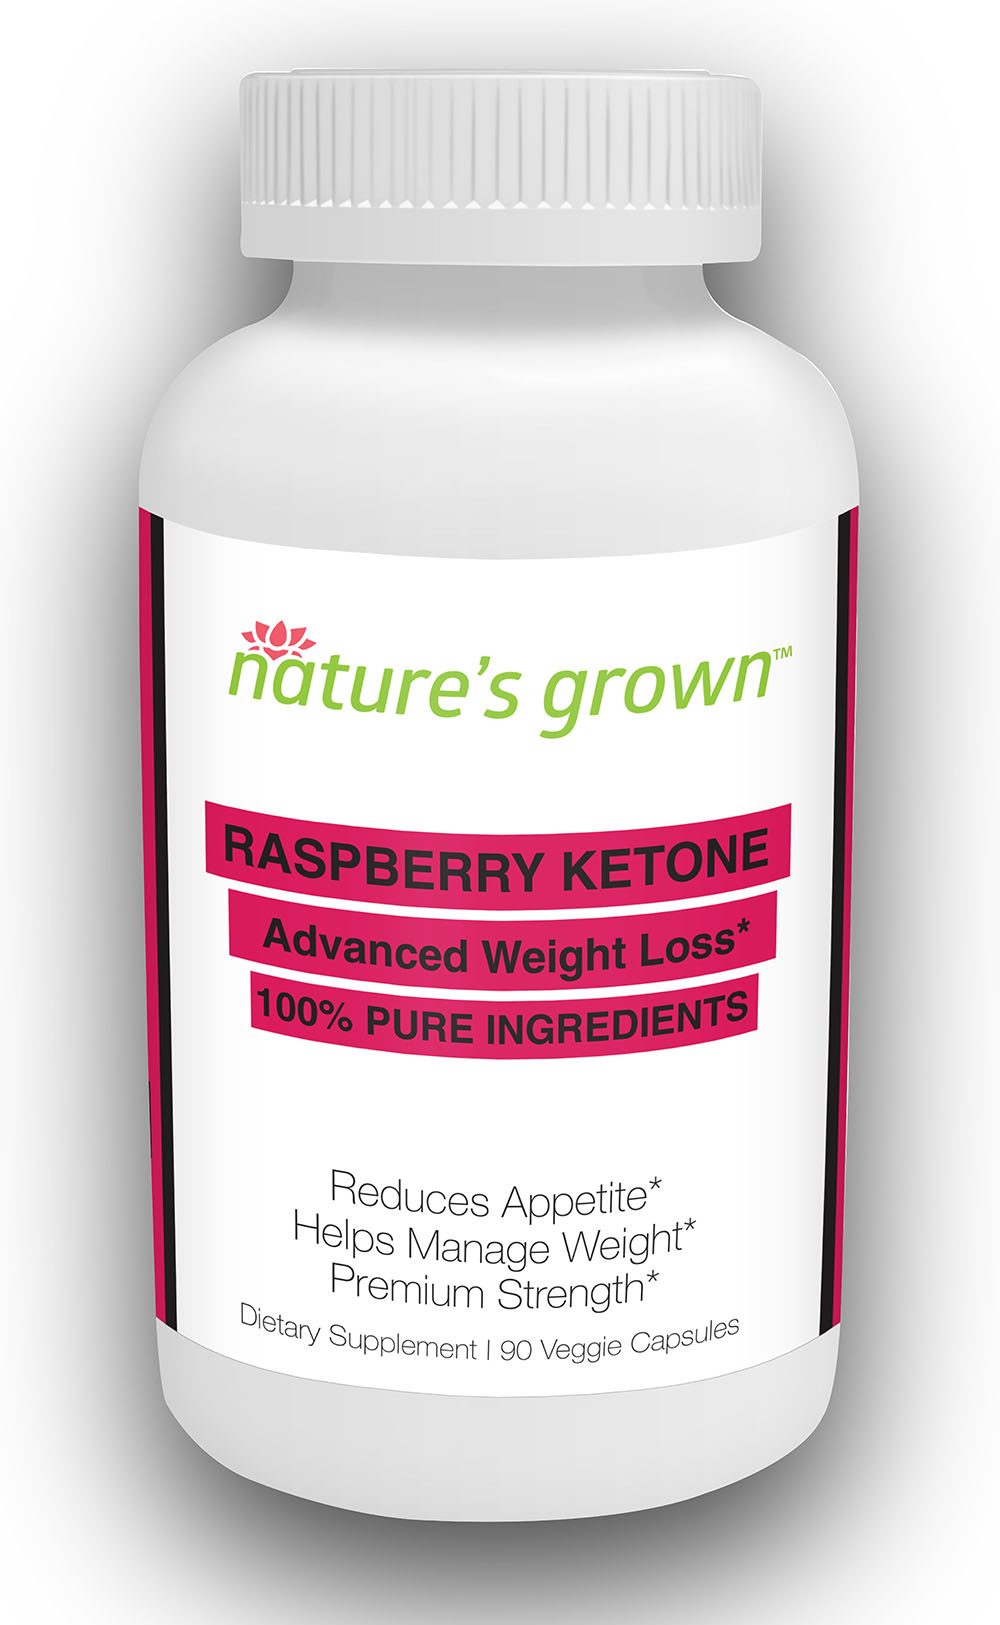 Raspberry good for weight loss